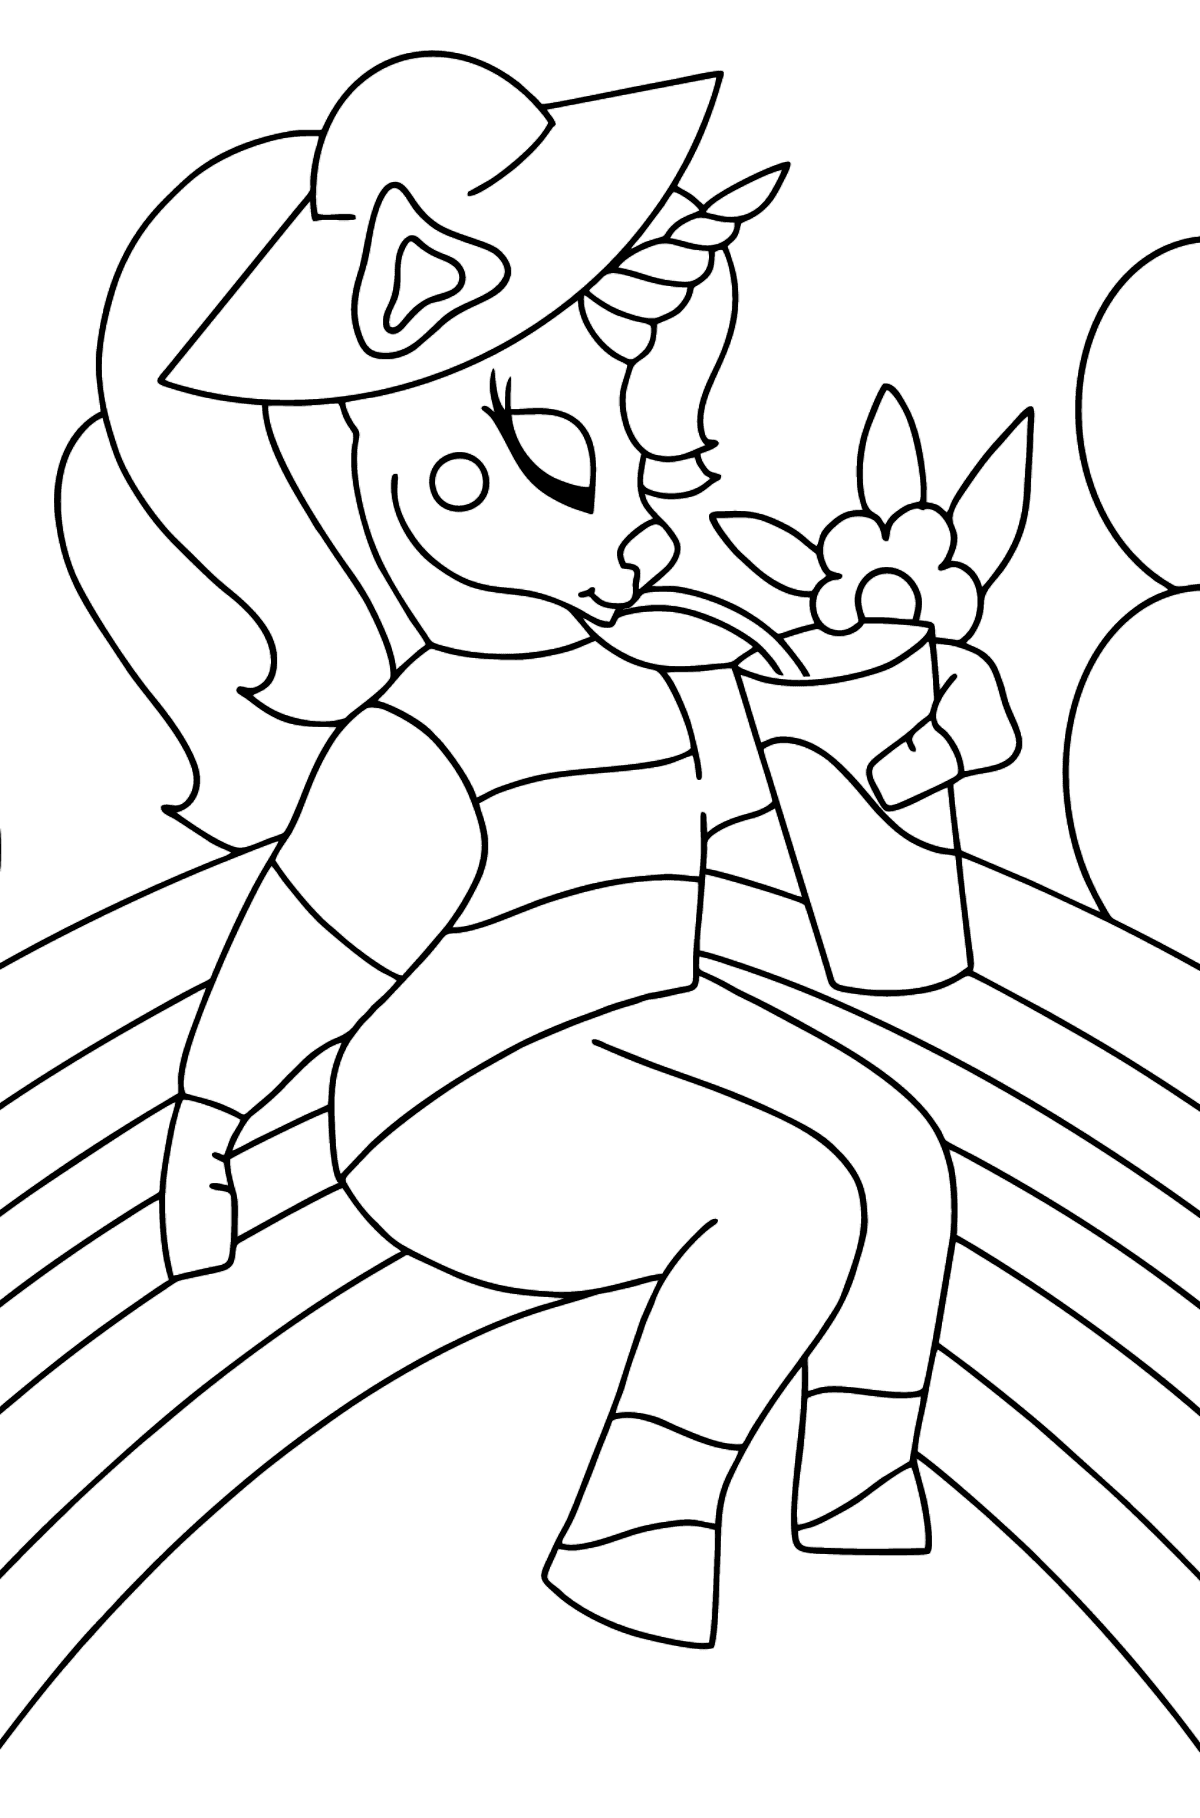 Simple Coloring Page - A Unicorn with a Rainbow - Coloring Pages for Kids